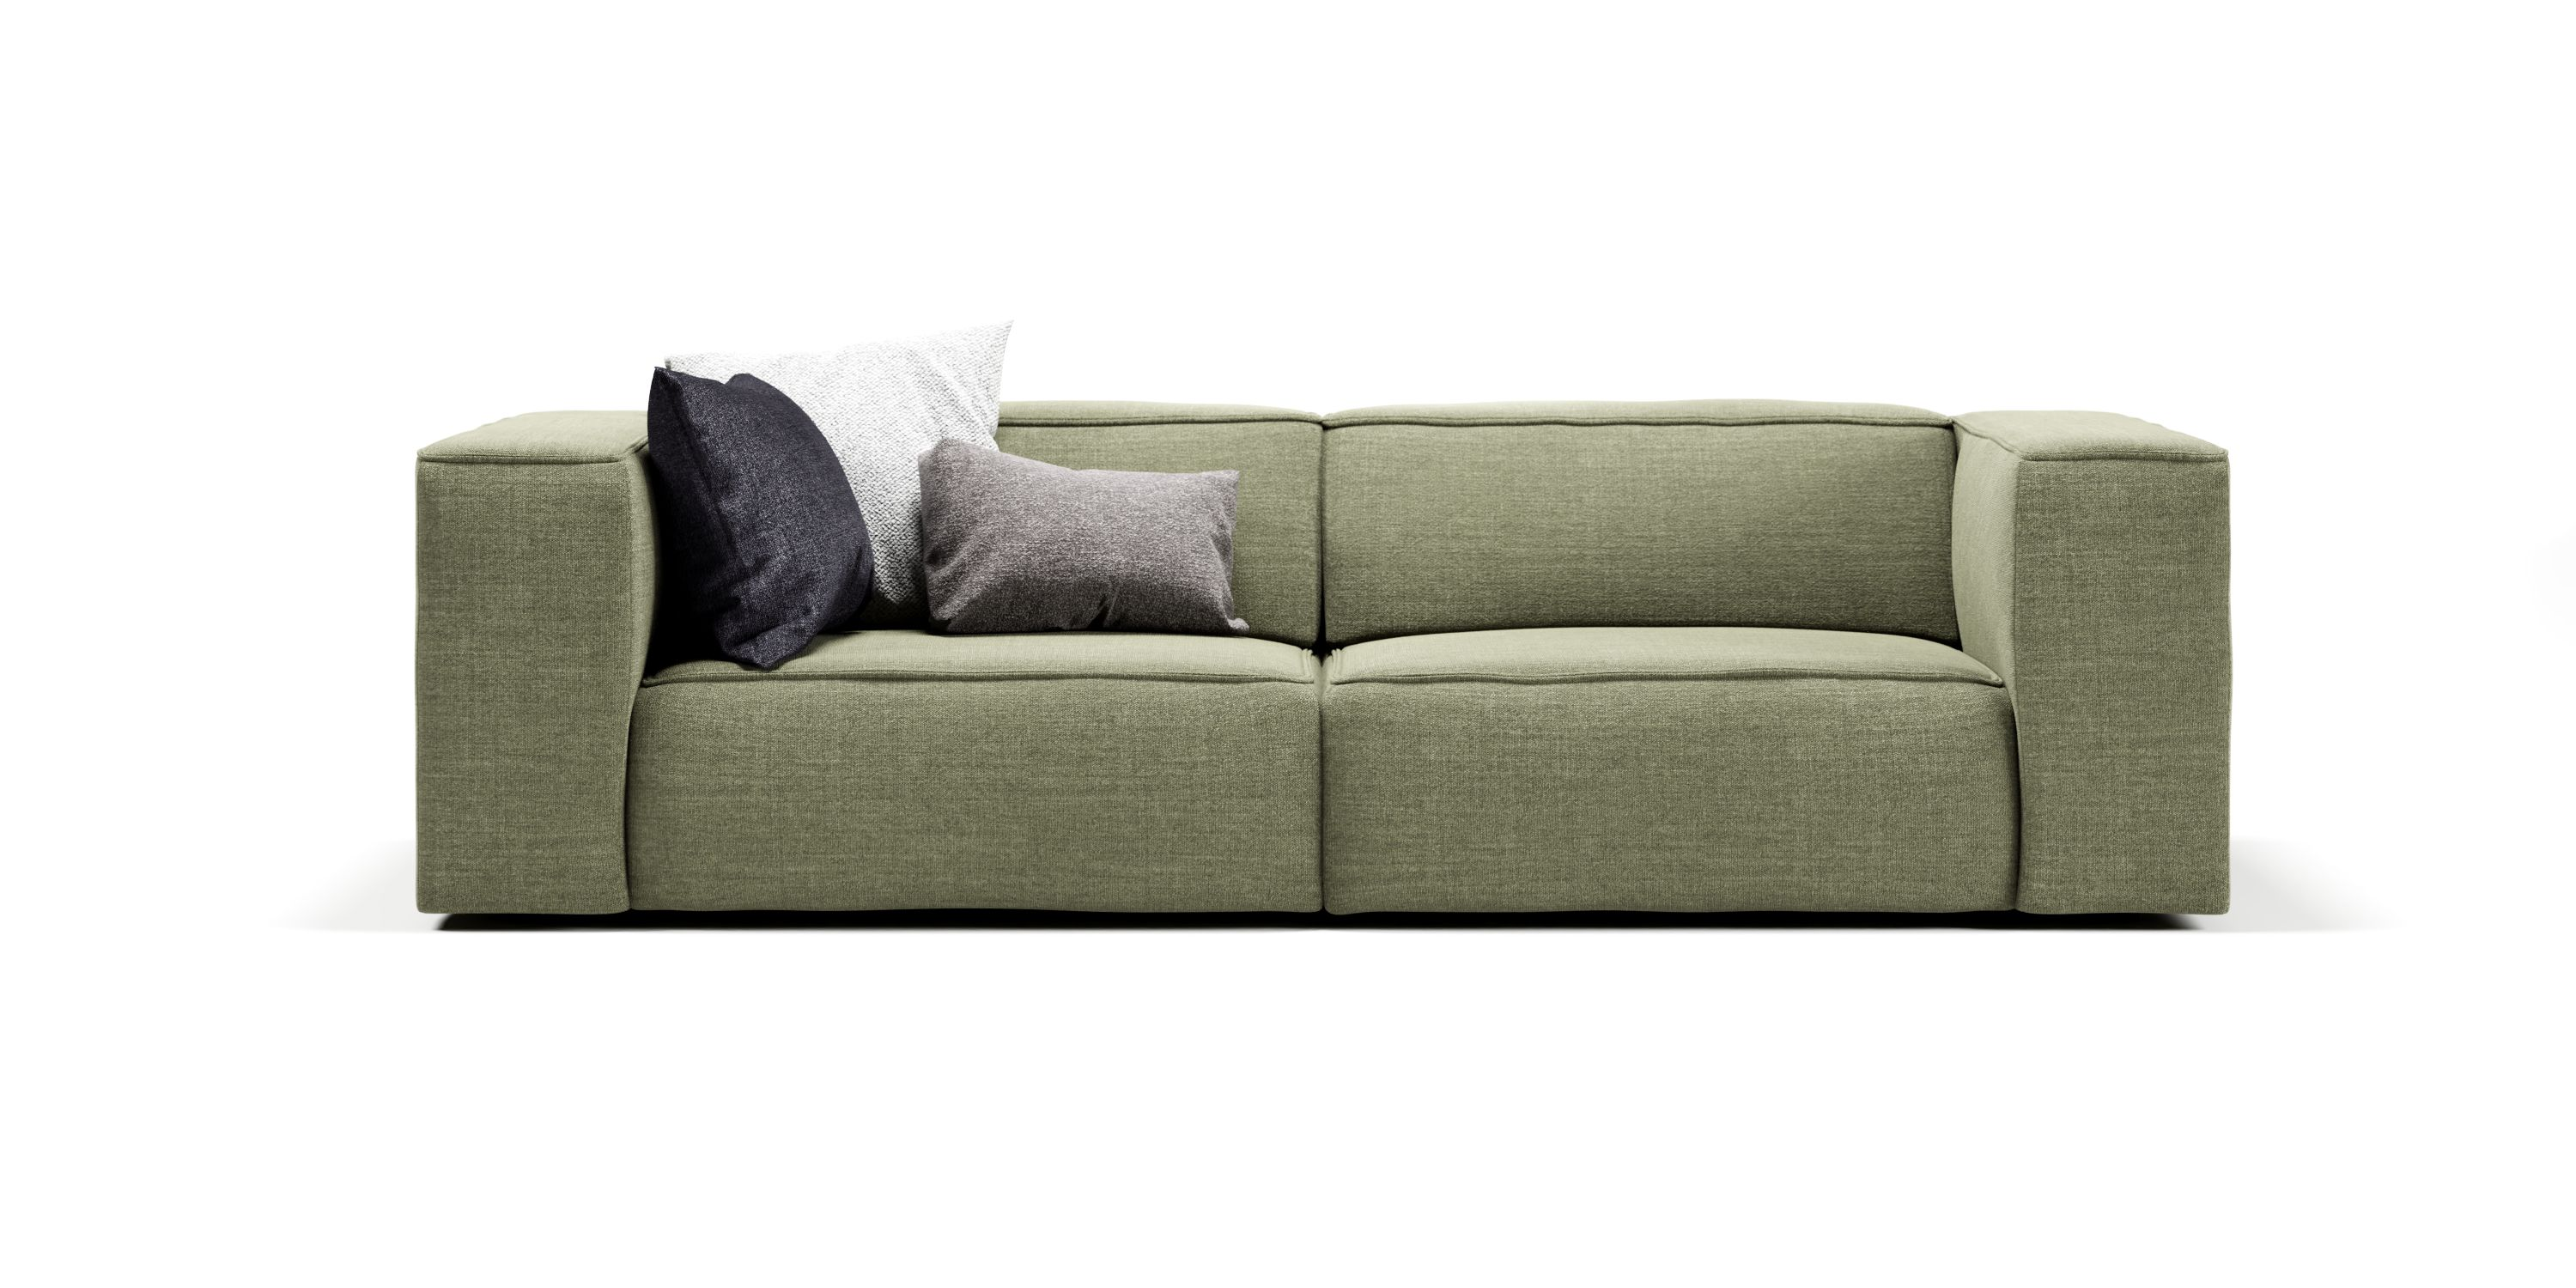 meester sofa 3 seater moss green | sofa design, modulares